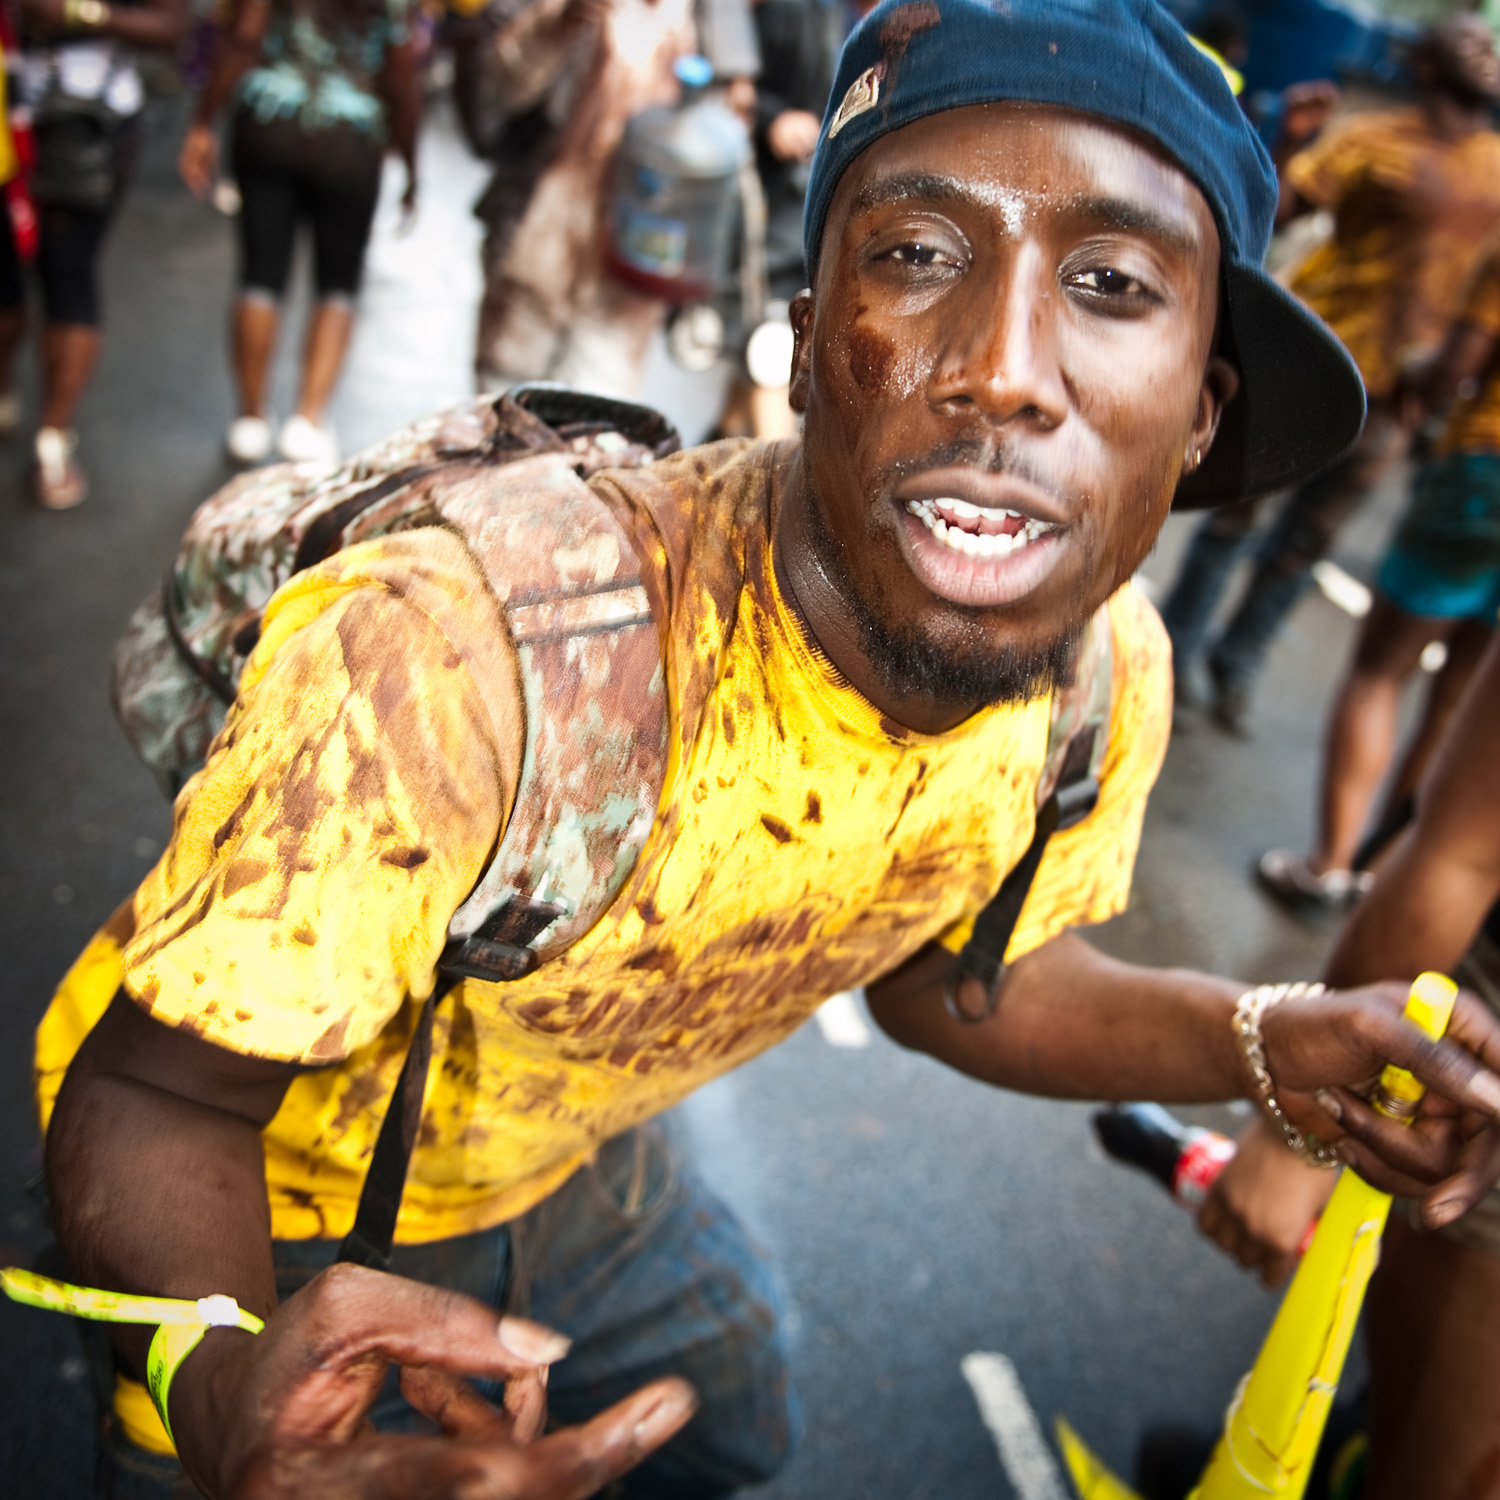 Carnival_the_chocolate_12